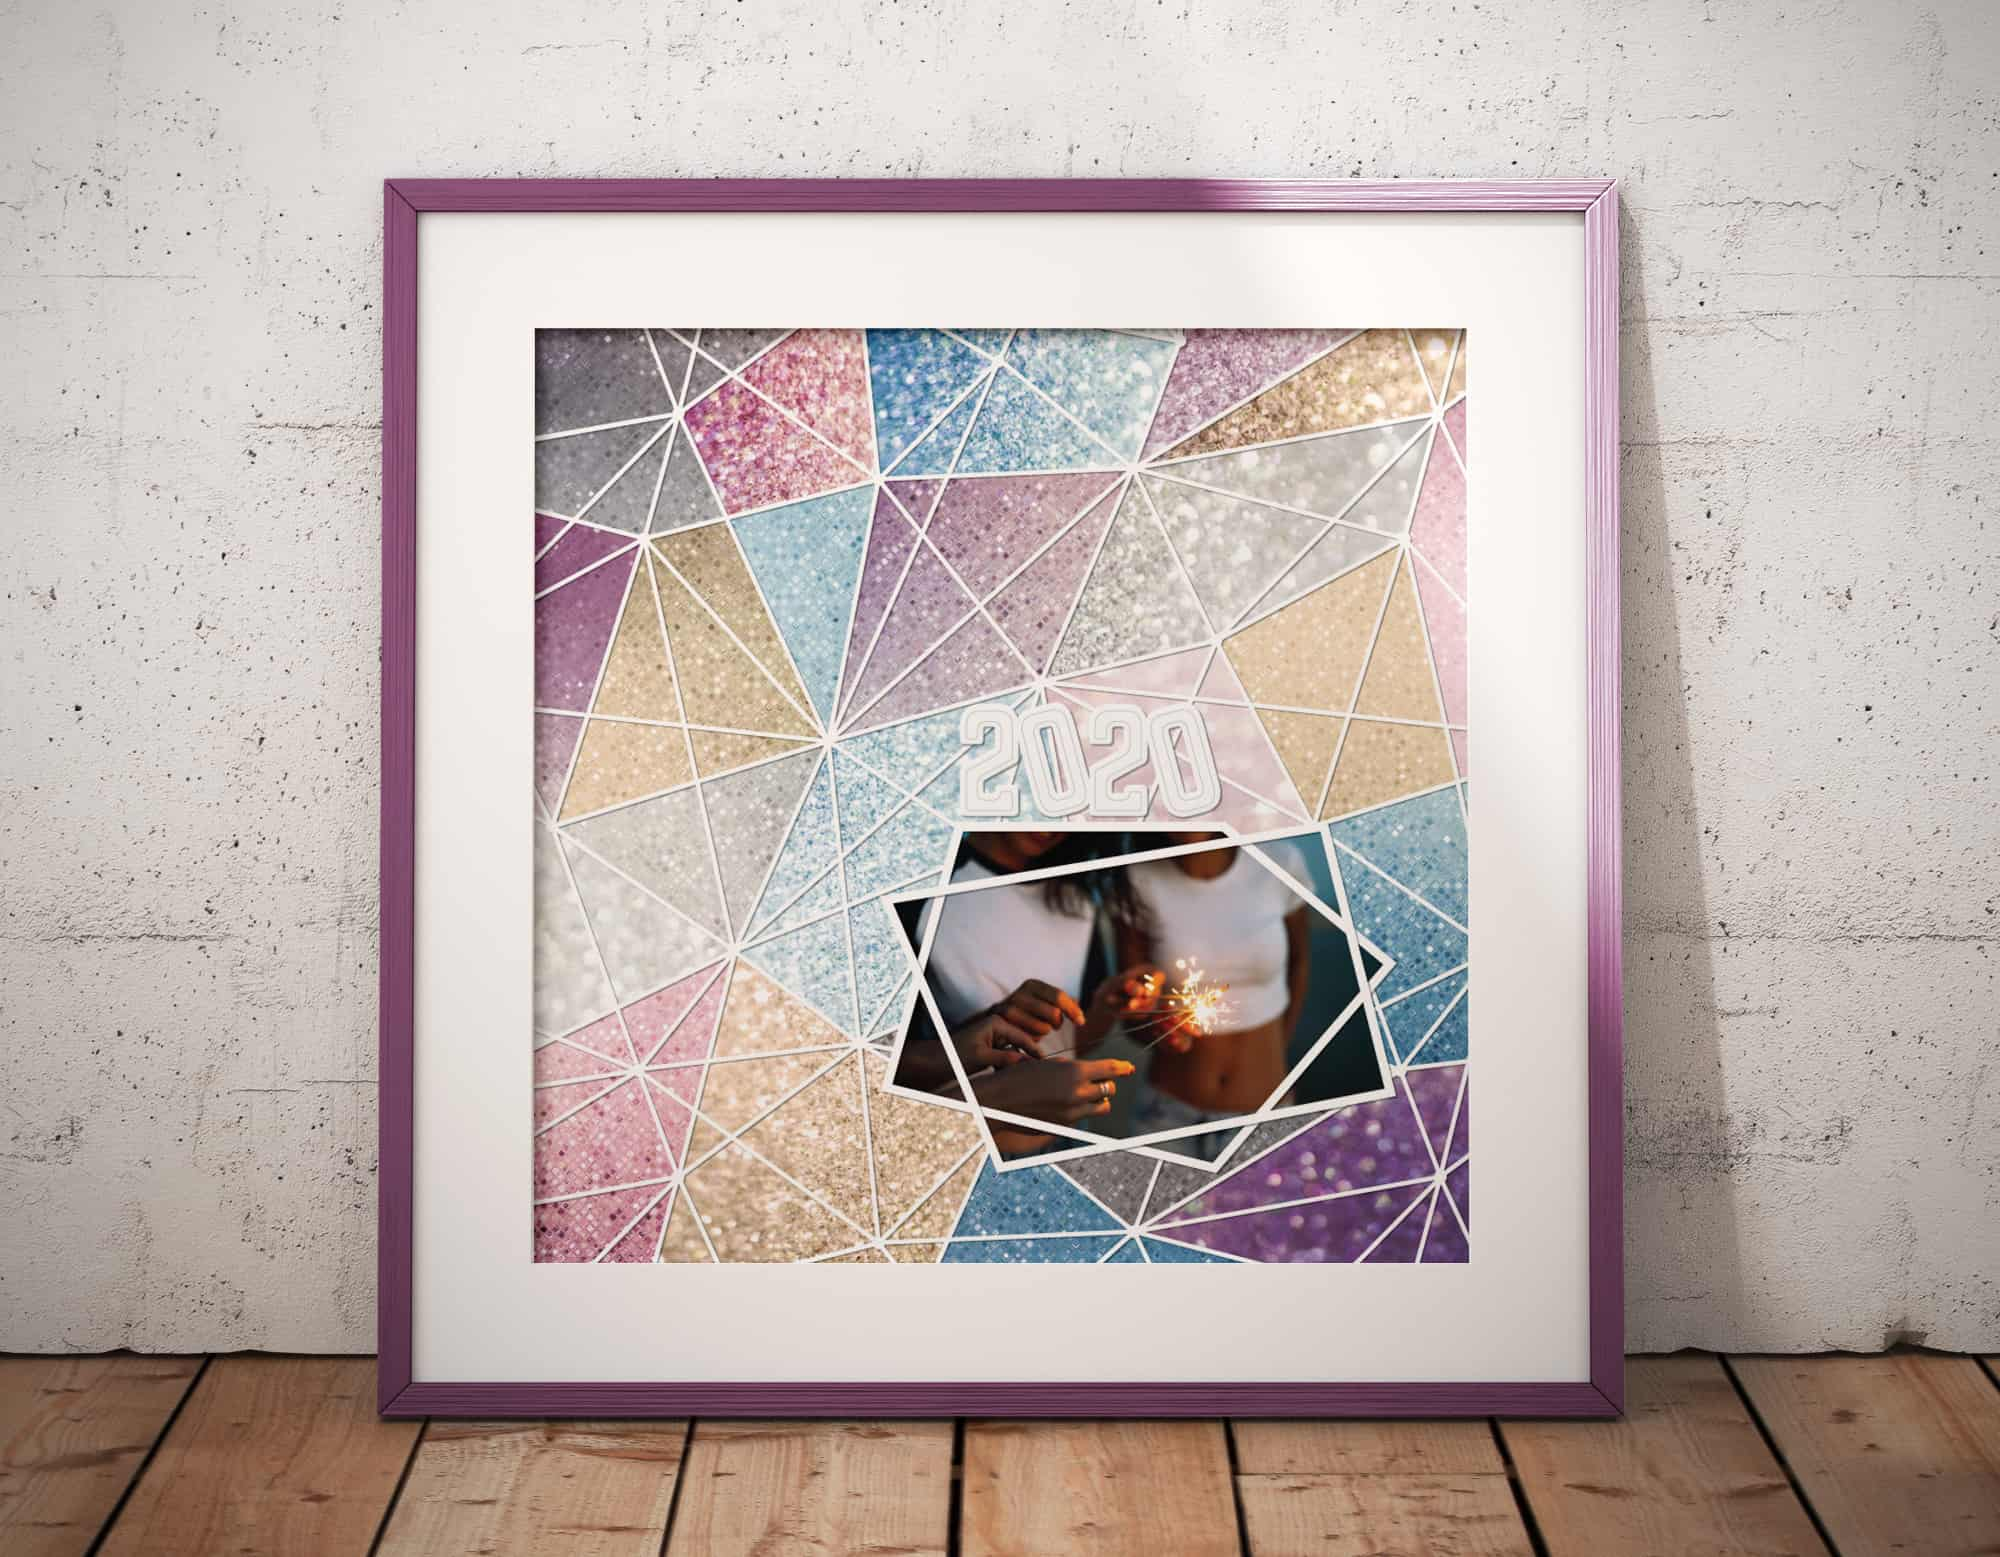 Sparkly Layout in Frame